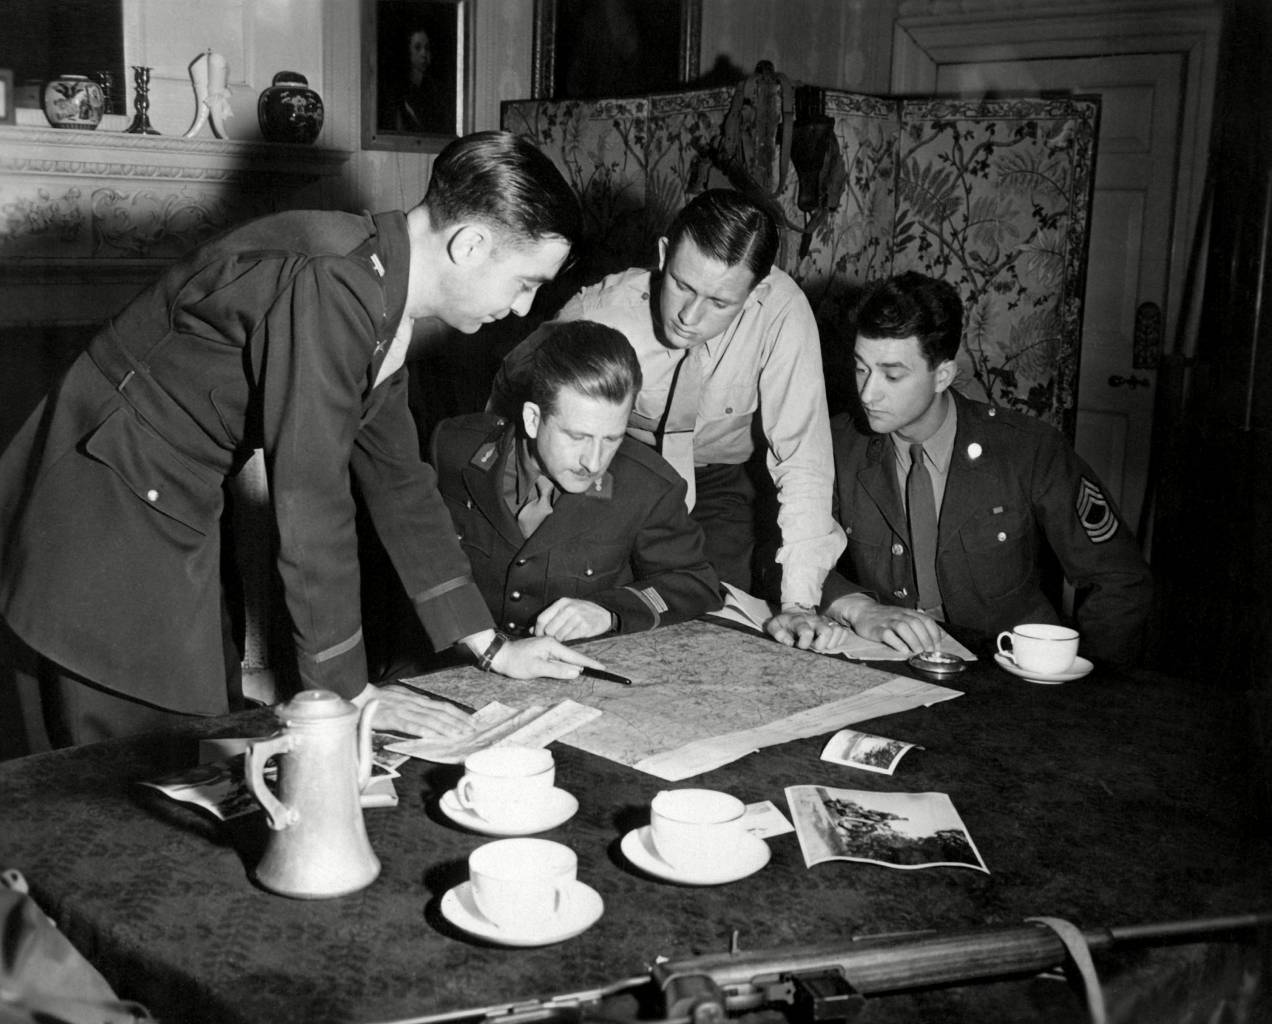 Jedburghs get instructions from Briefing Officer in London flat. England, ca. 1944. 'Jedburghs' were soldiers in 'Operation Jedburgh', World War 2 intelligence and espionage operations of U.S. and British with the French Resistance, coordinated with Allied invasion of France from June through Dec. 1944.